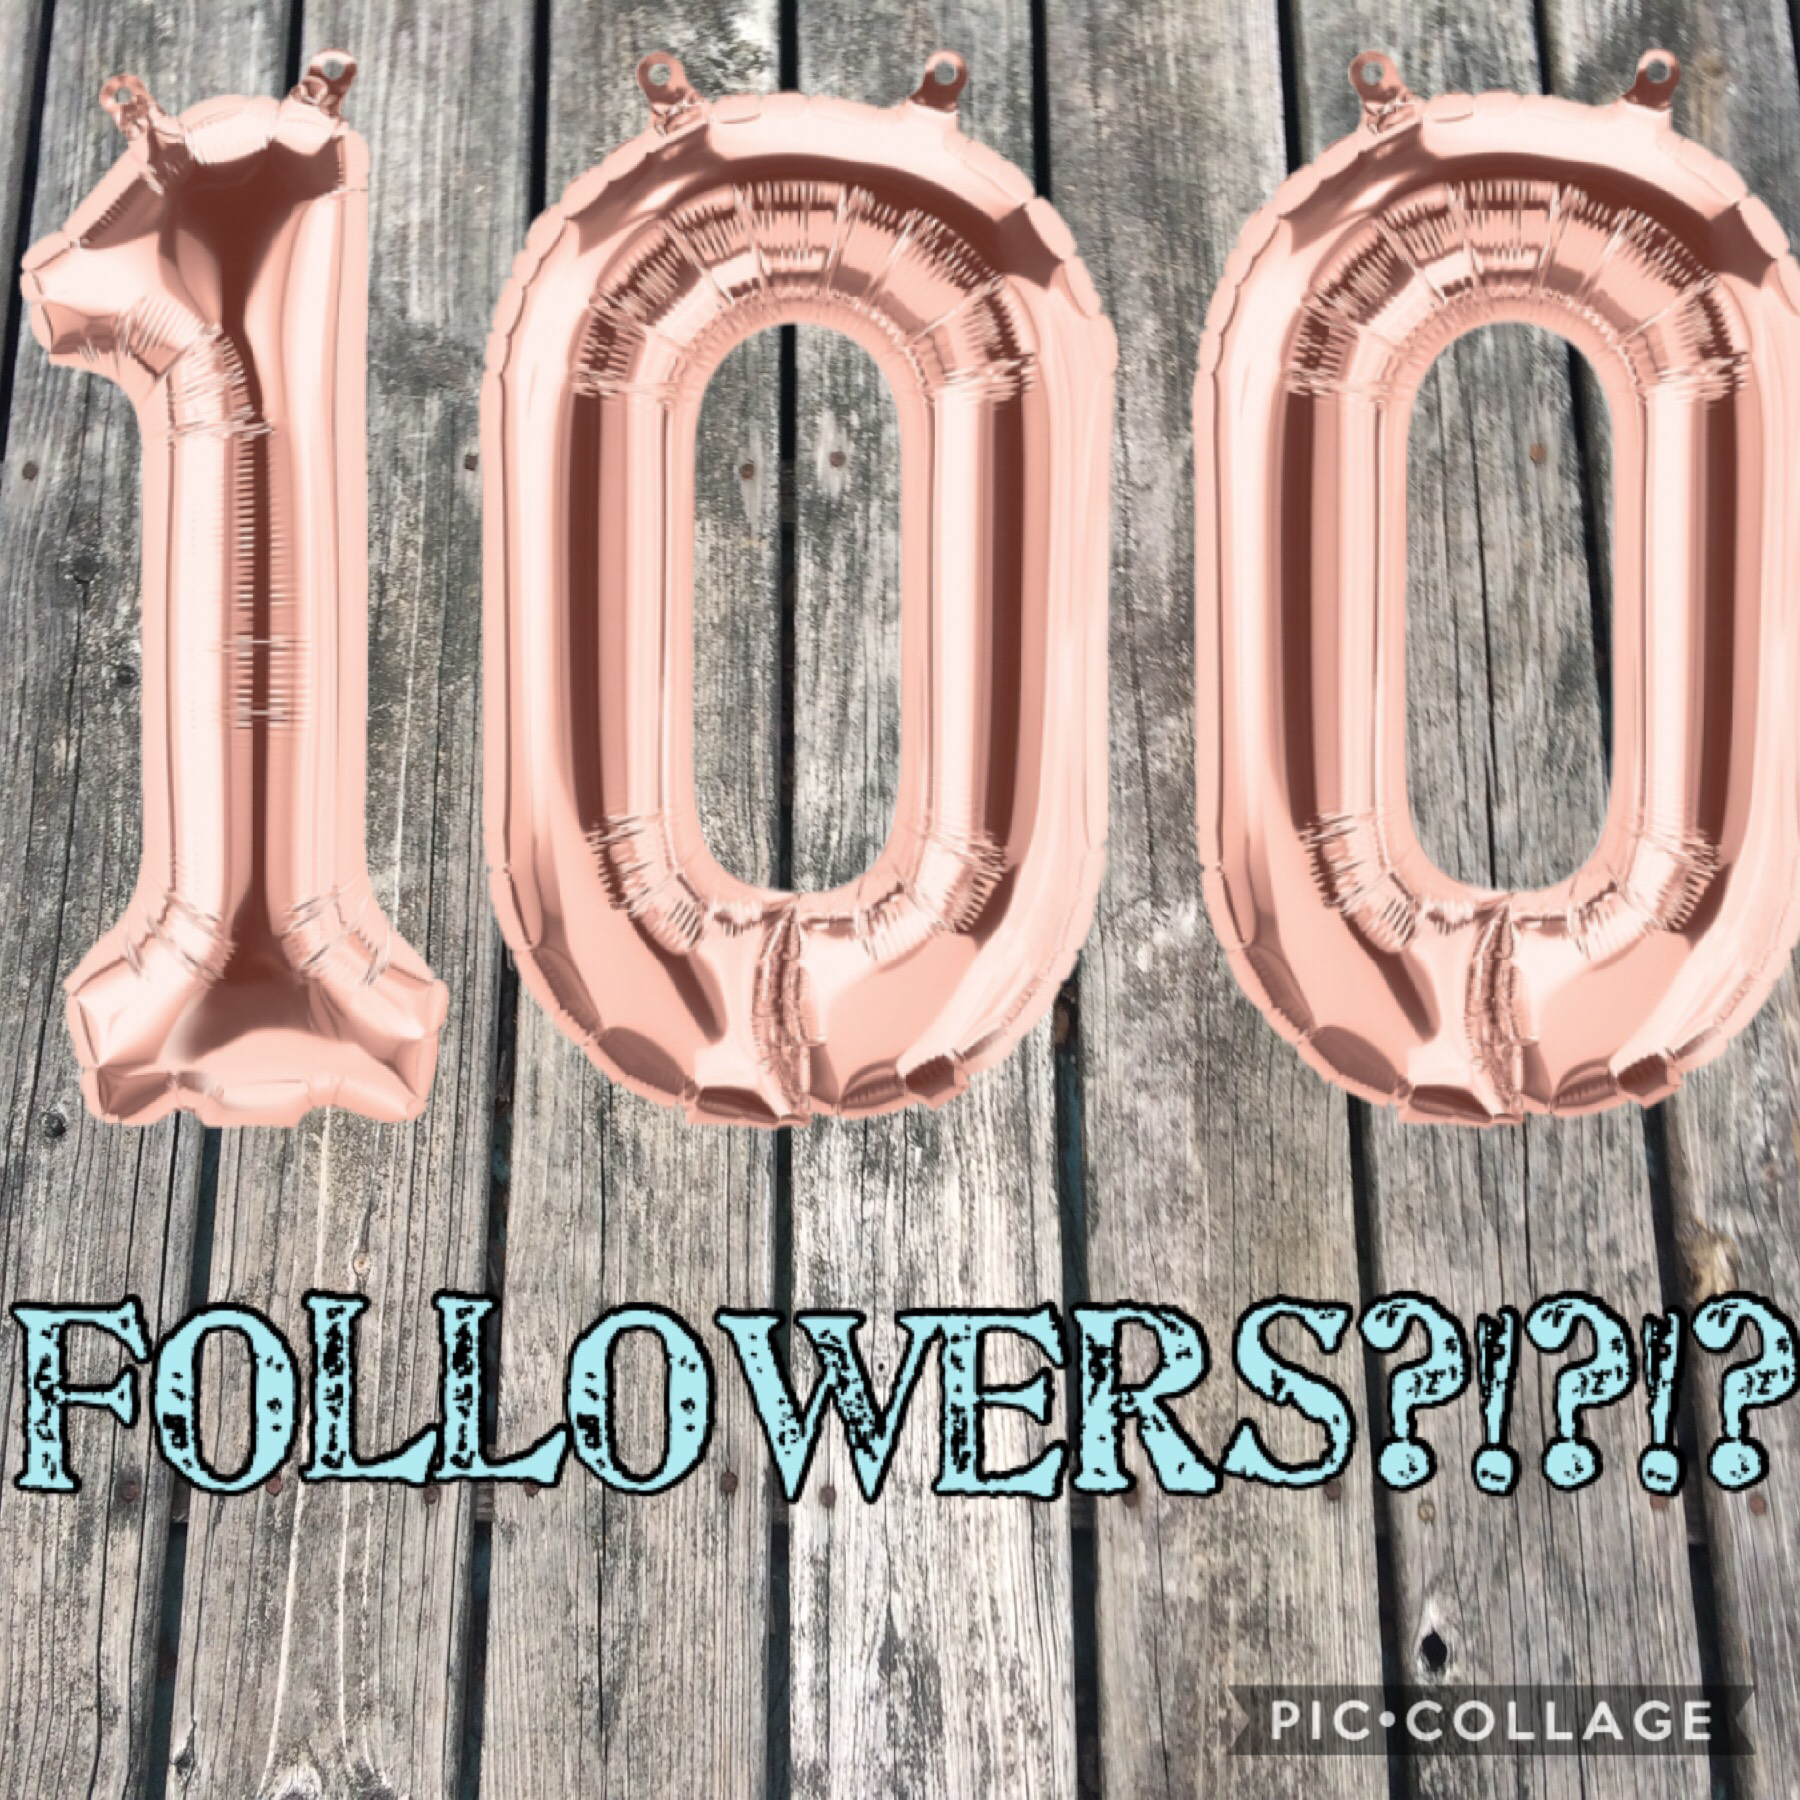 100 followers! I can't believe it! Thank you so much to each and every one of you!!!